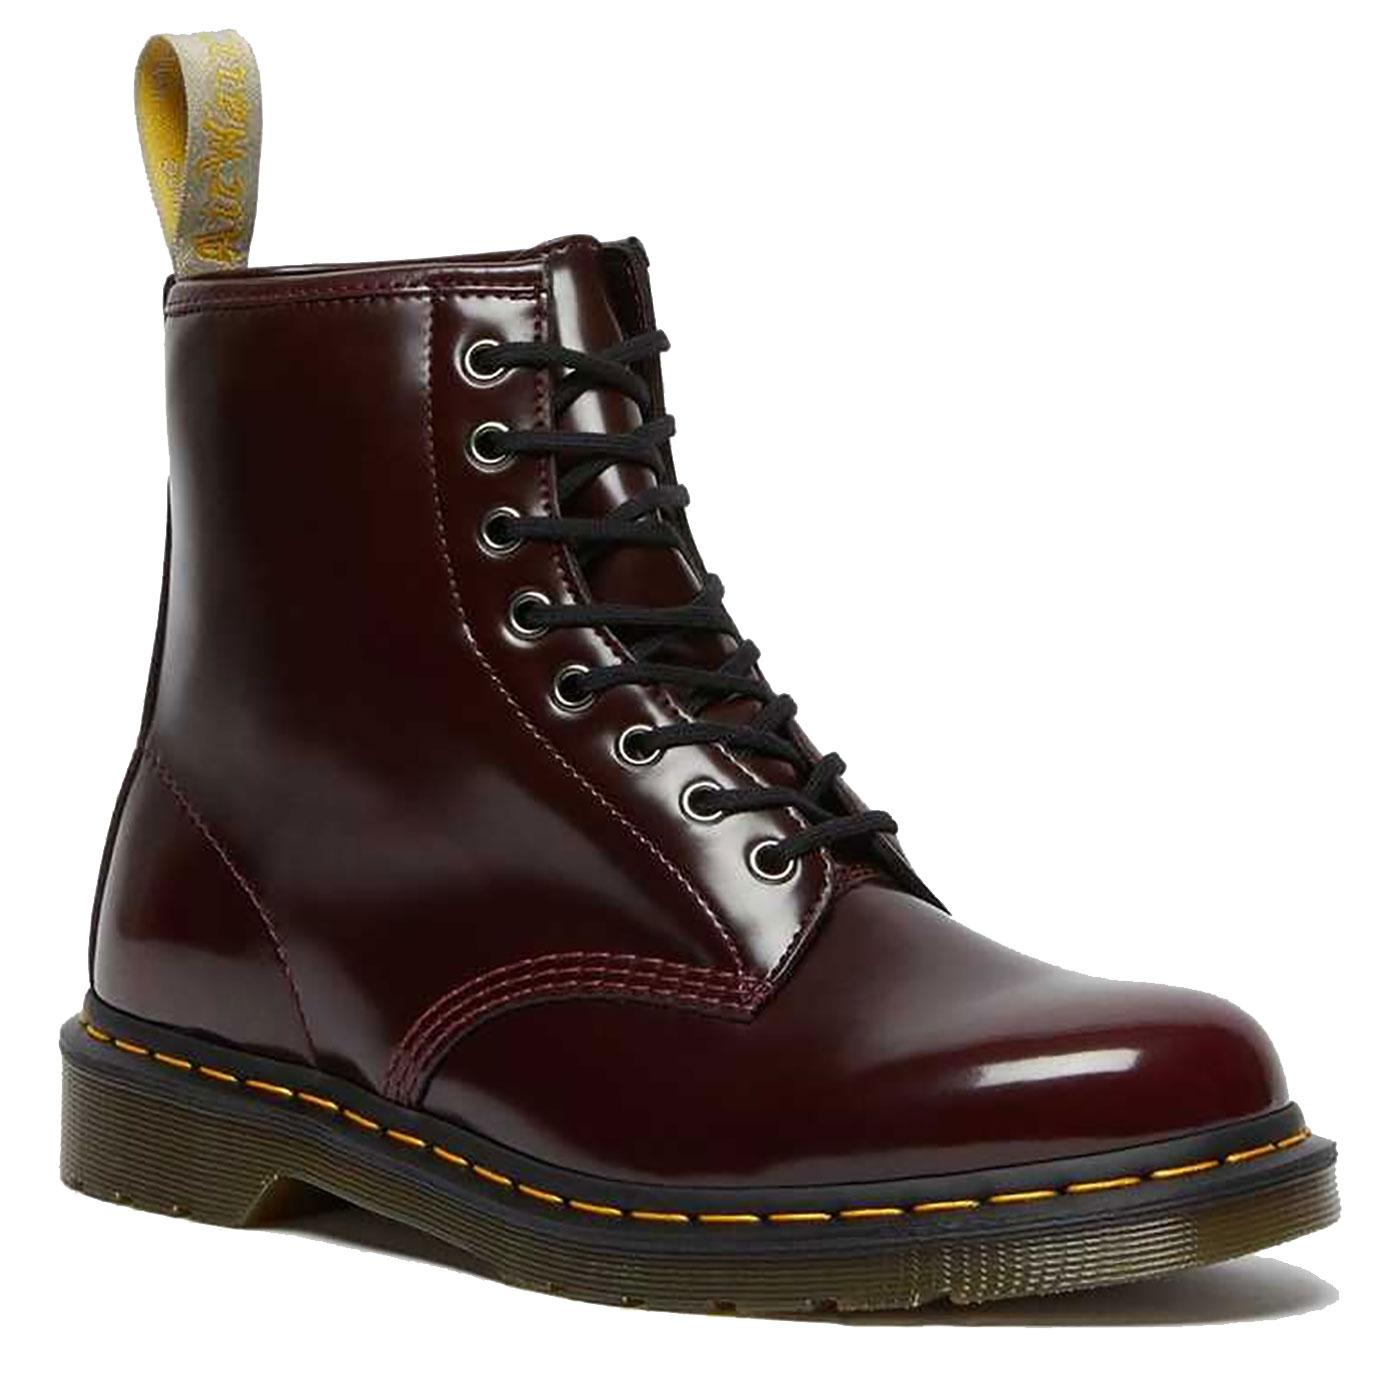 Vegan 1460 Oxford DR MARTENS Retro 1970's Boots CR